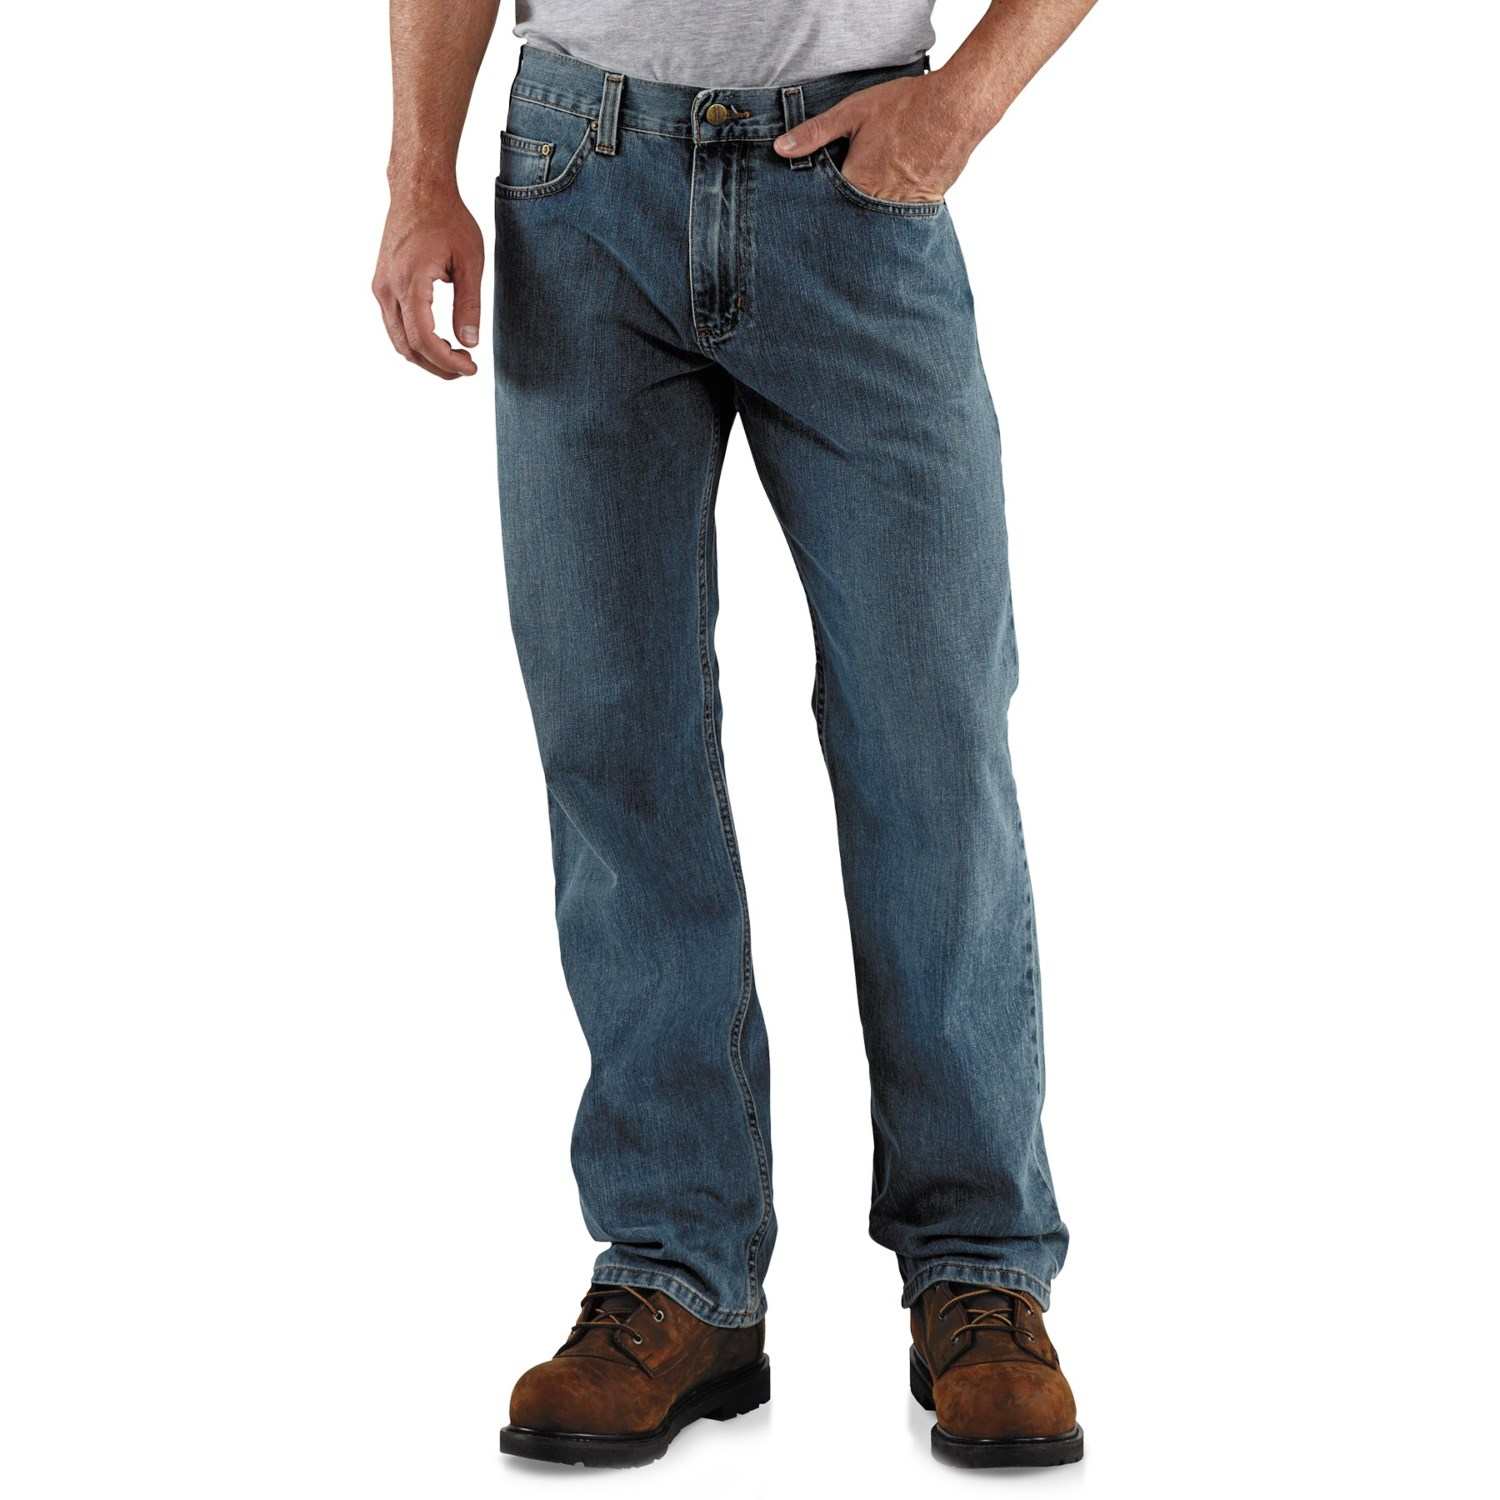 Men's Slim Jeans Slightly more relaxed than our mens skinny jeans ; our best-selling Slim fit jeans offer comfort with a clean fit. They're cut with room through the thighs, light tapering at the ankle, and a touch of stretch, so our designs are great for men with athletic builds looking for a tailored cut.